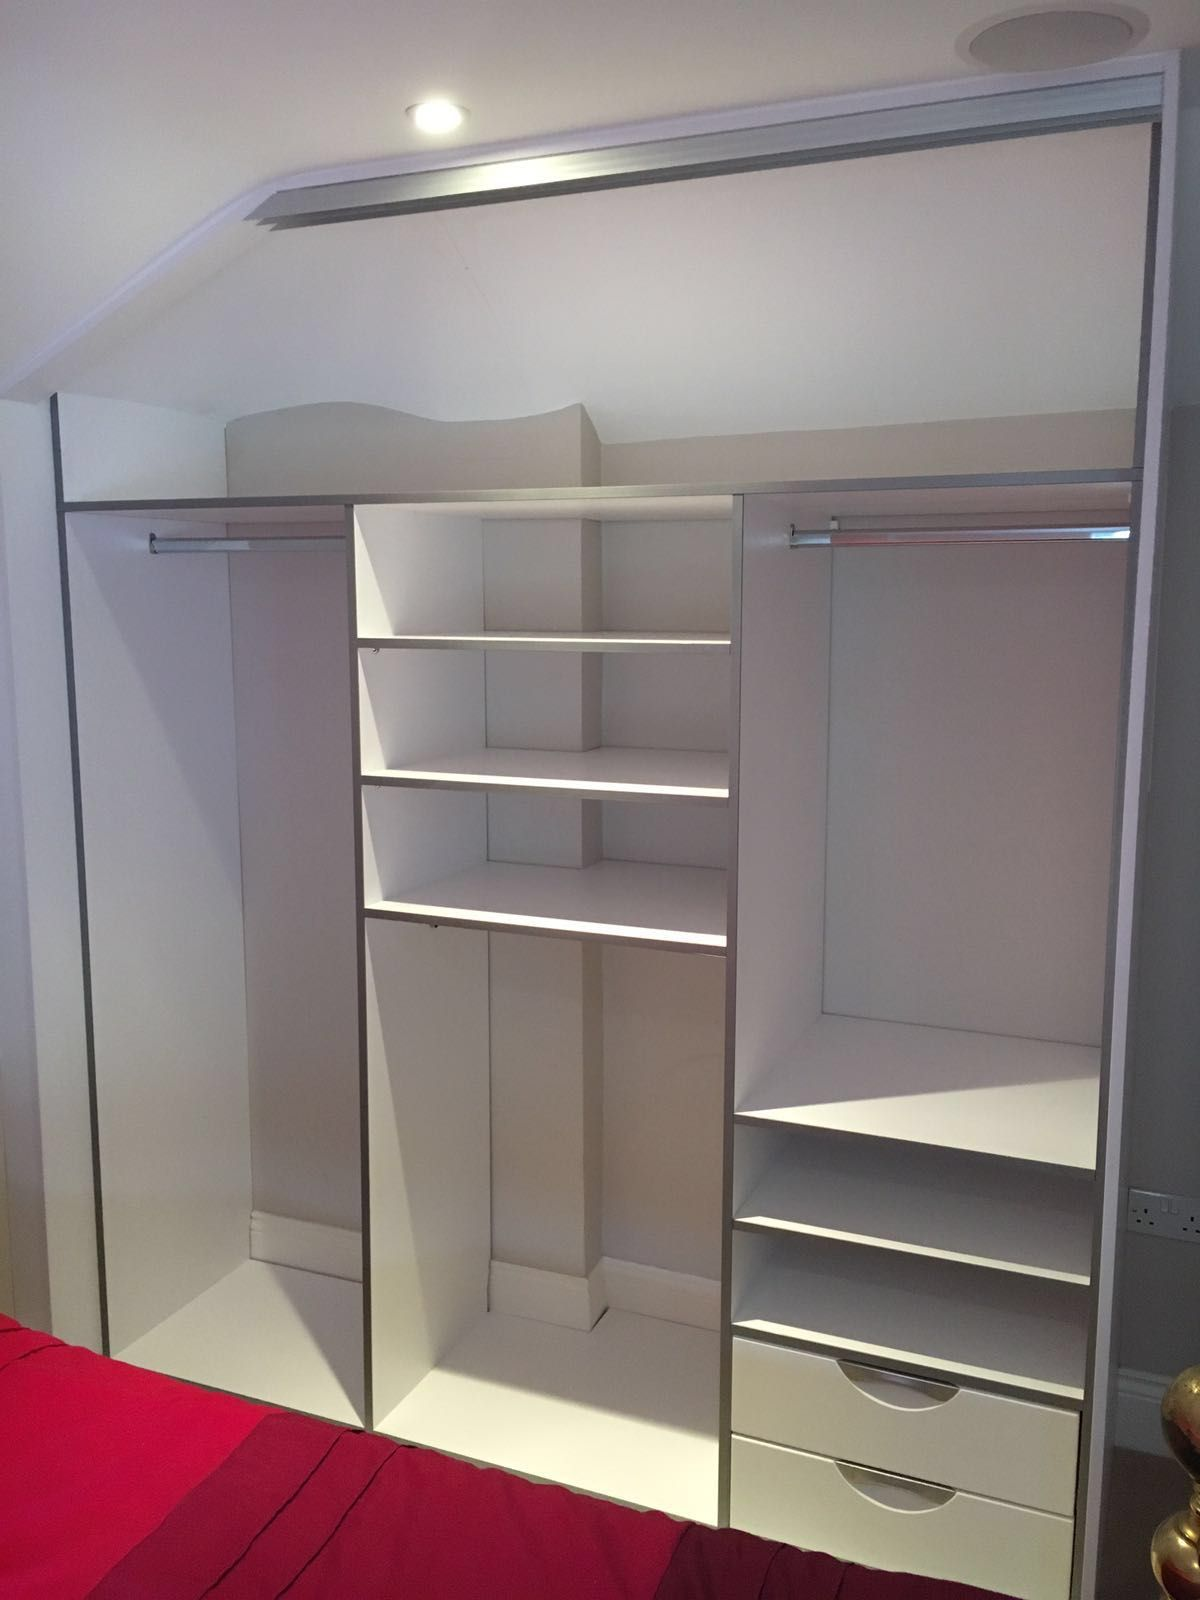 This Is A 3 Door Sliding Wardrobe With One Angled Door To Fit The Space It S Got A Silver Door Trim With Mirrors And W With Images Sliding Wardrobe 3 Door Sliding Wardrobe